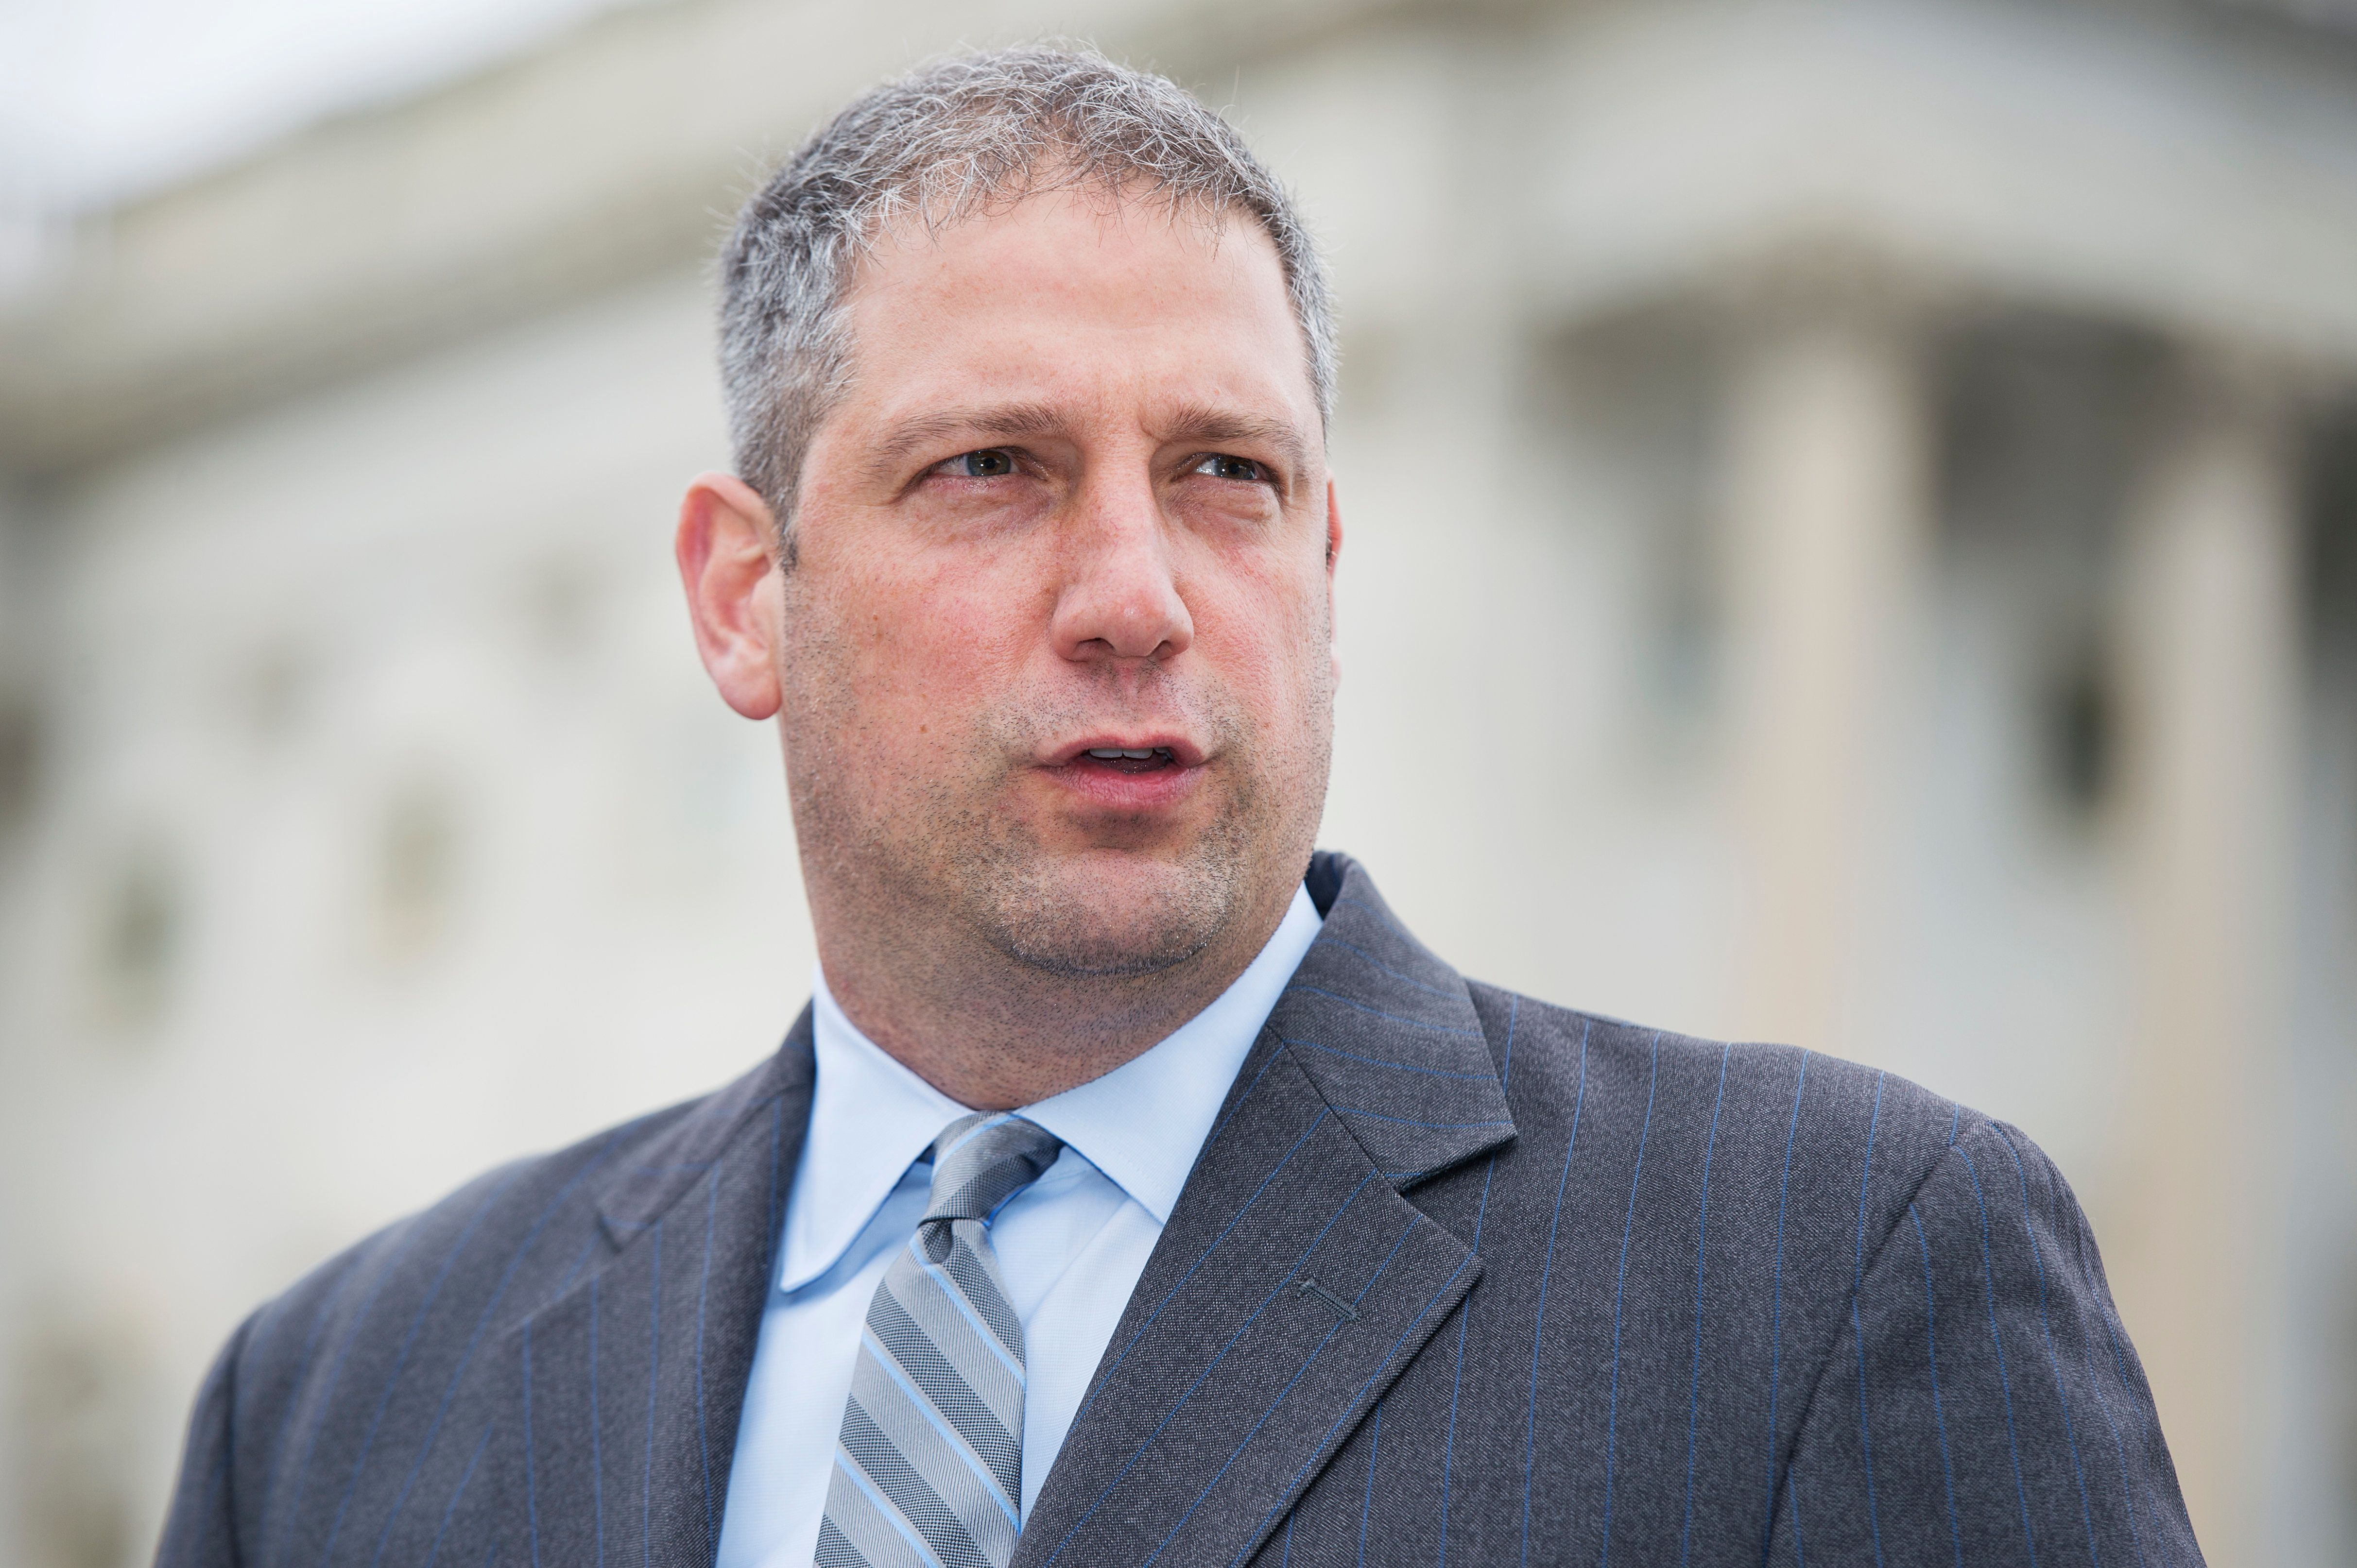 UNITED STATES - JUNE 03: Rep. Tim Ryan, D-Ohio, speaks during a news conference with other House democrats at the House triangle to urge Congress to not fast-track the Trans-Pacific Partnership and recognize a petition signed by 2 million Americans also opposing it, June 3, 2015. (Photo By Tom Williams/CQ Roll Call)